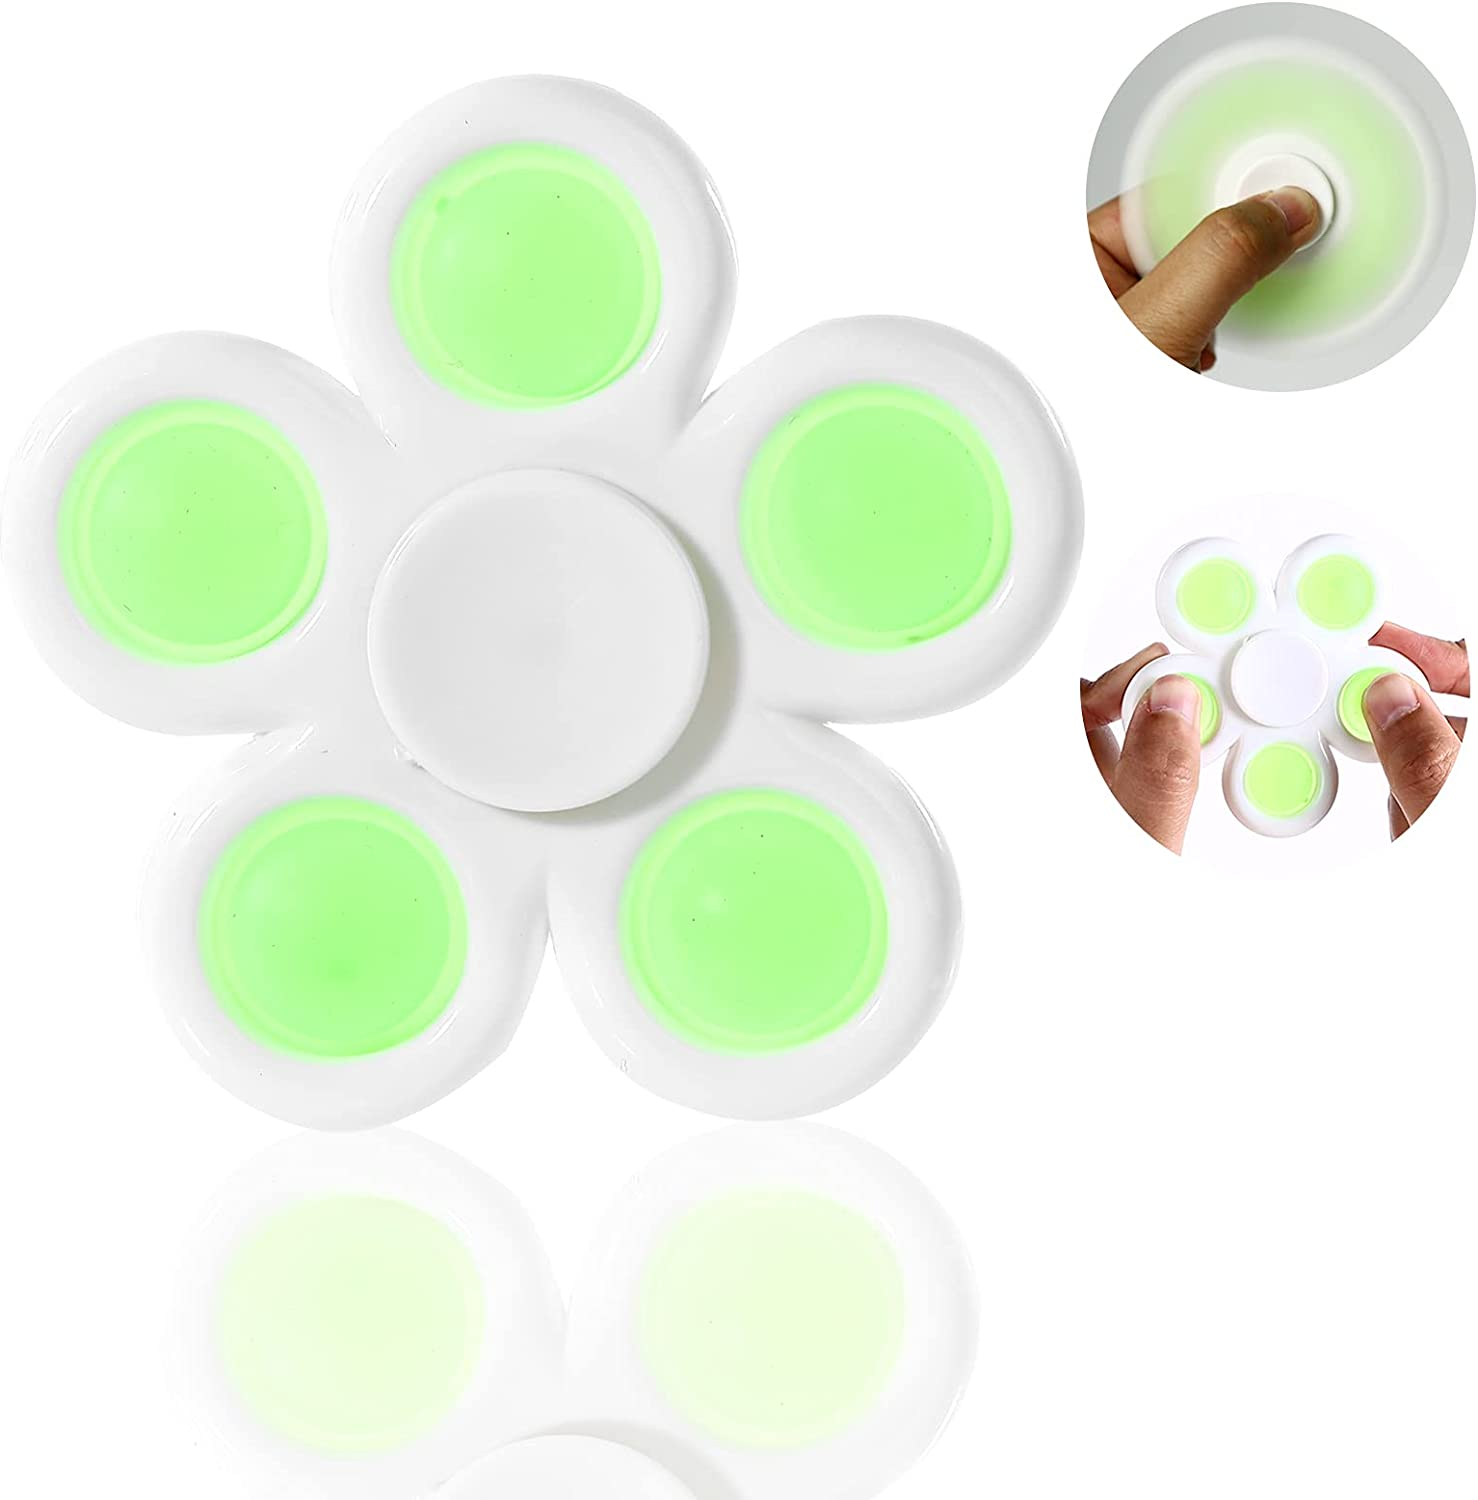 GOHEYI Push 70% OFF Outlet Bubbles Fidget Spinner Toy Pop in Simple 2 High material 1